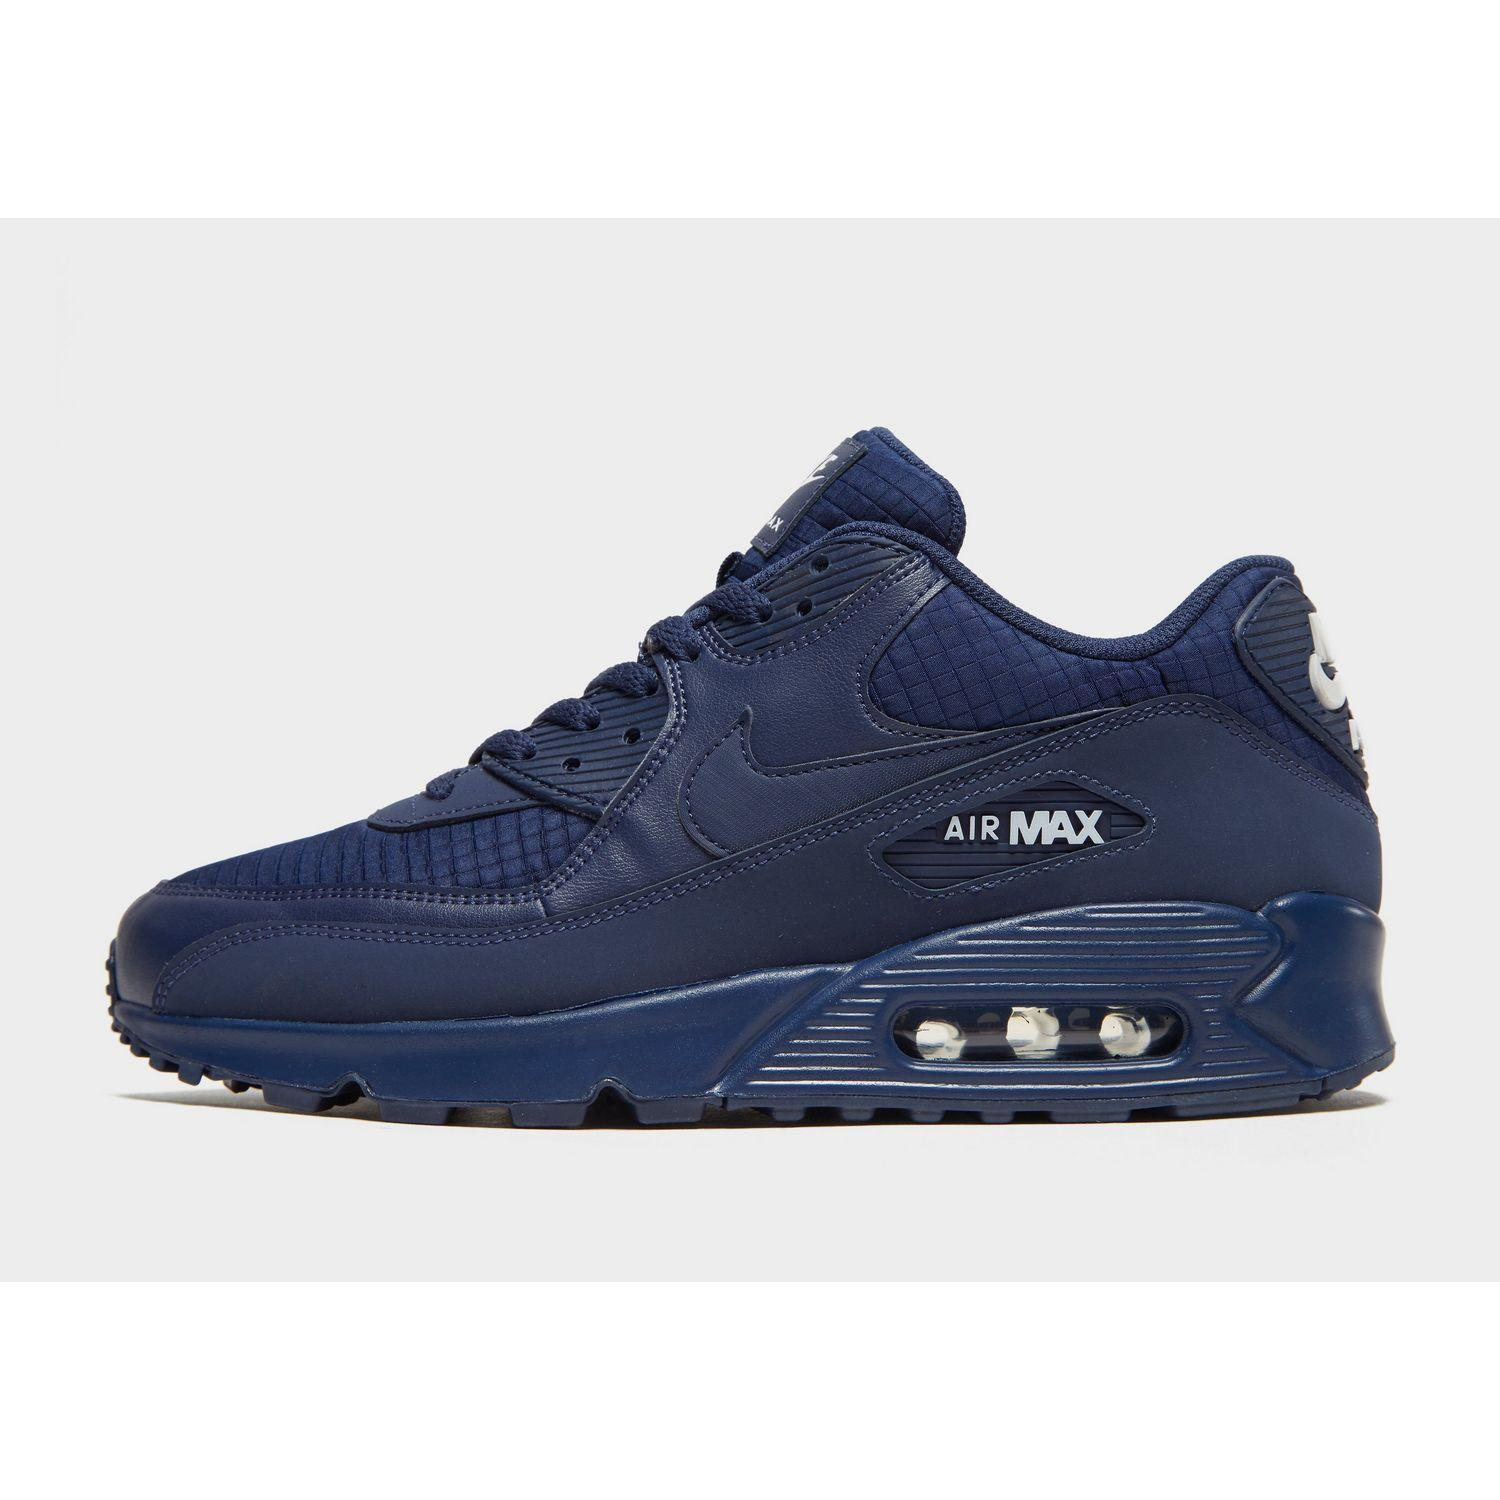 Nike Air Max 90 Essential in Blue for Men - Lyst 78977a3626